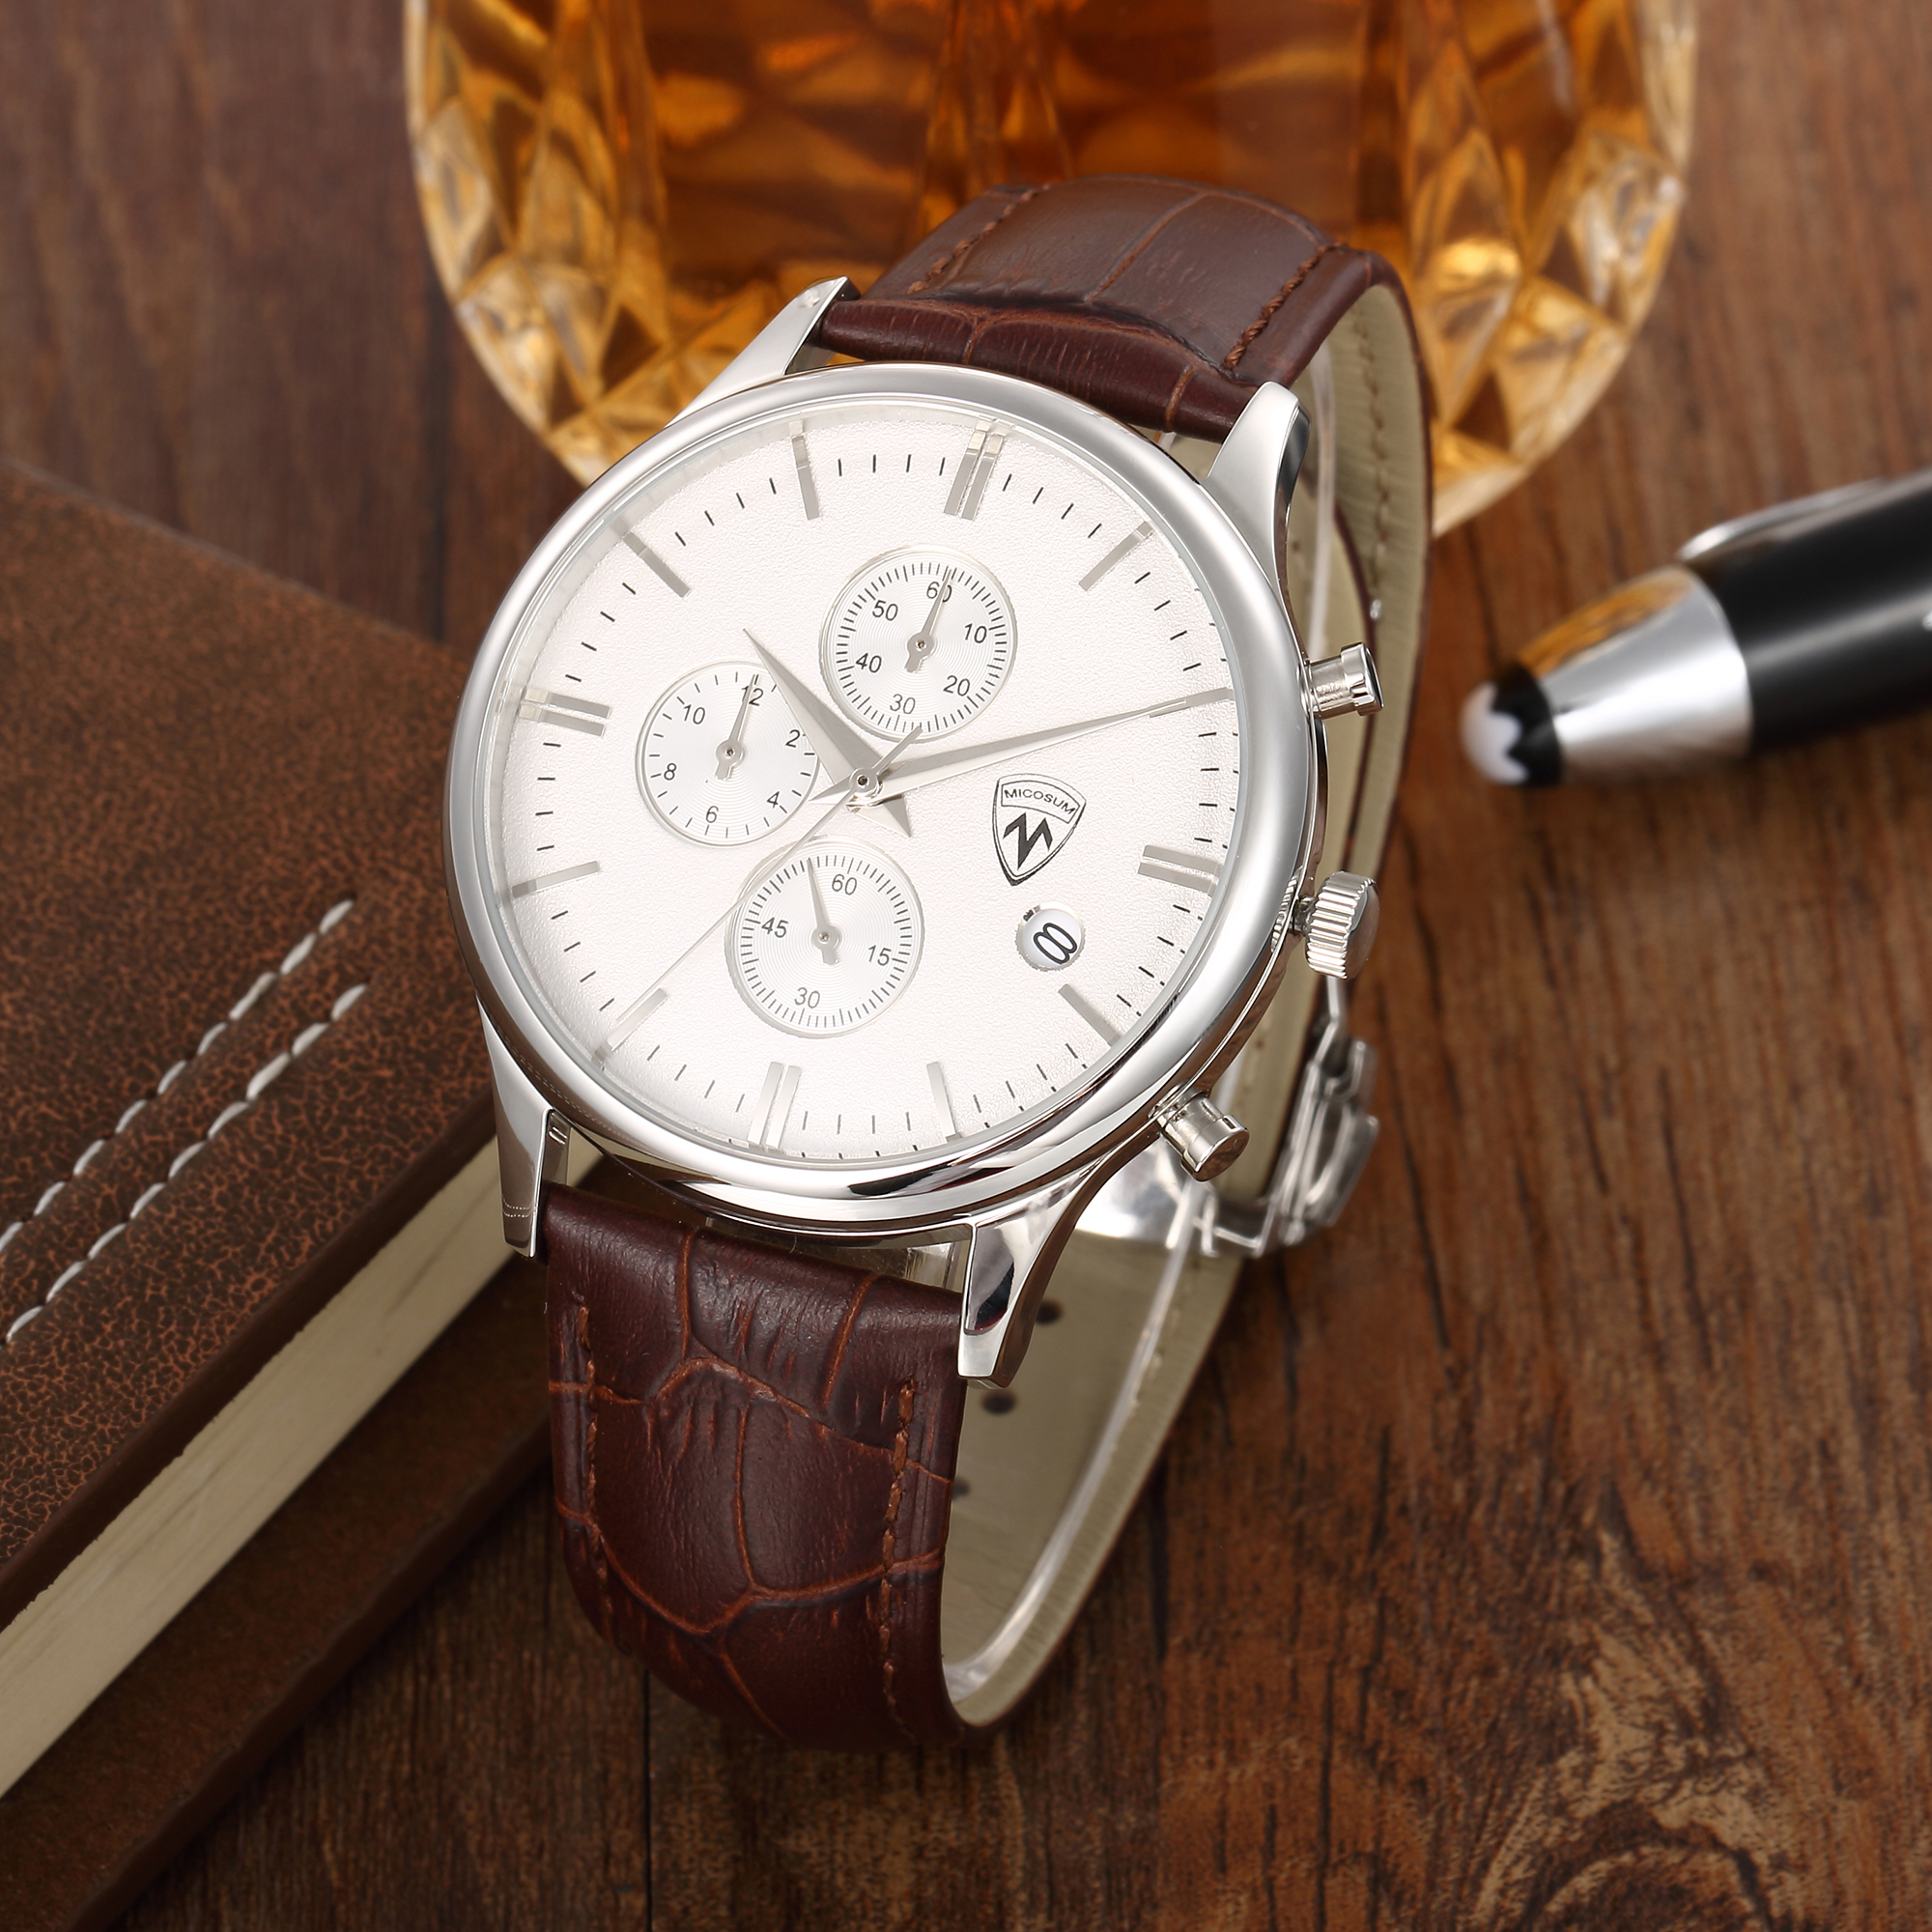 Watches Men Top Quality Brand Luxury Stainless Steel Case Sapphire Crystal Chronograph Quartz Watch Leather Wristwatches(China (Mainland))